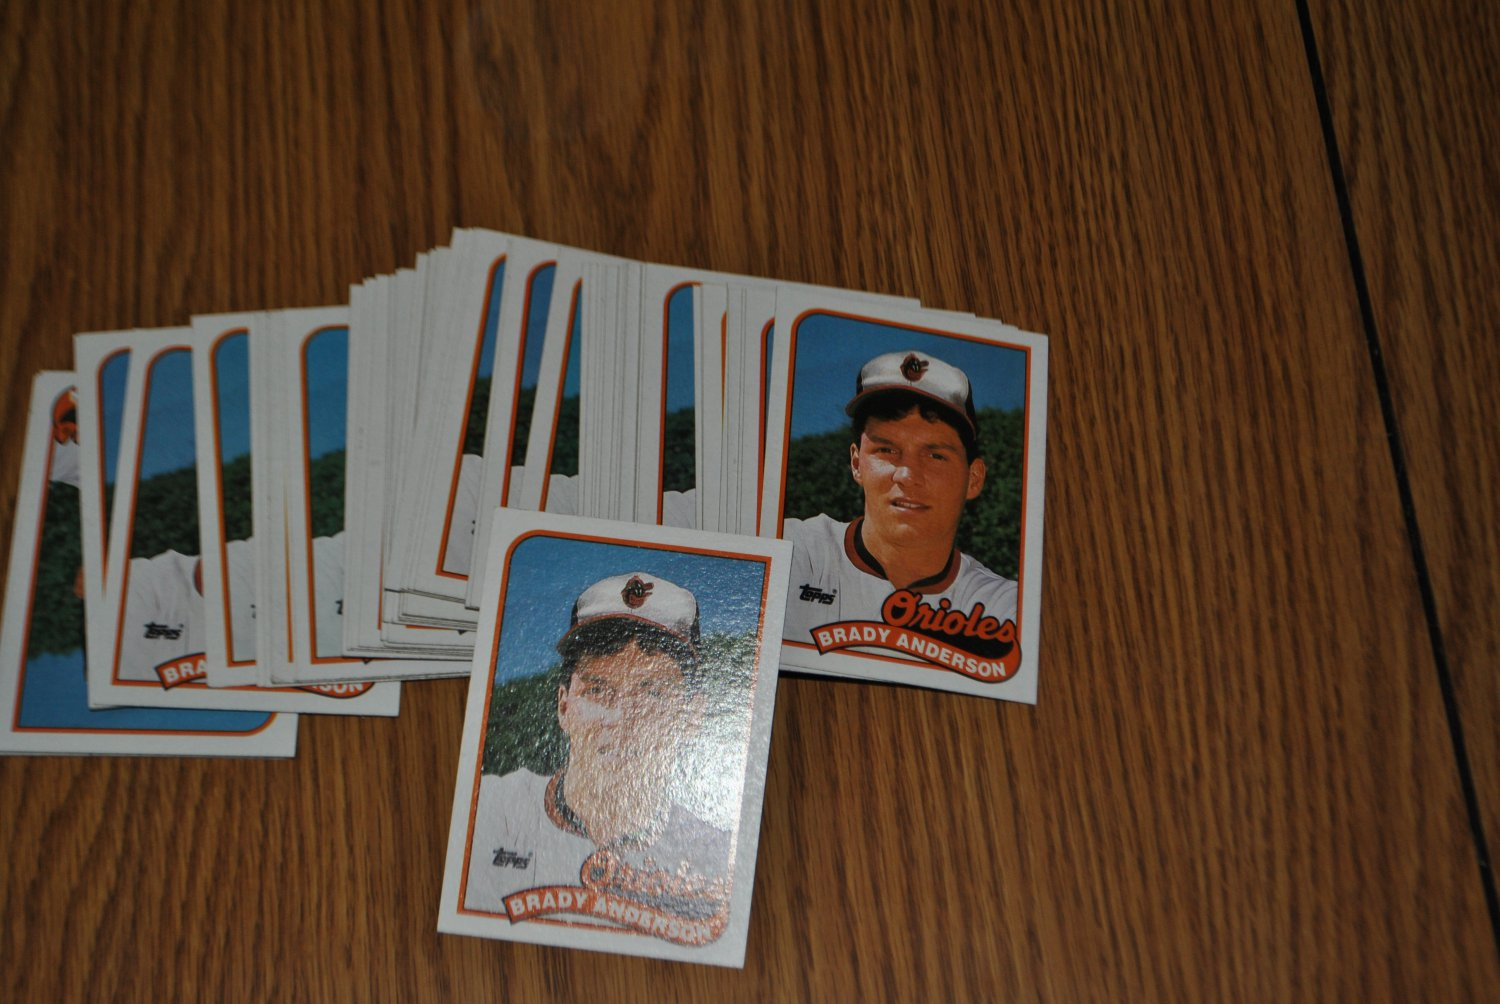 1989 topps brady anderson lot.